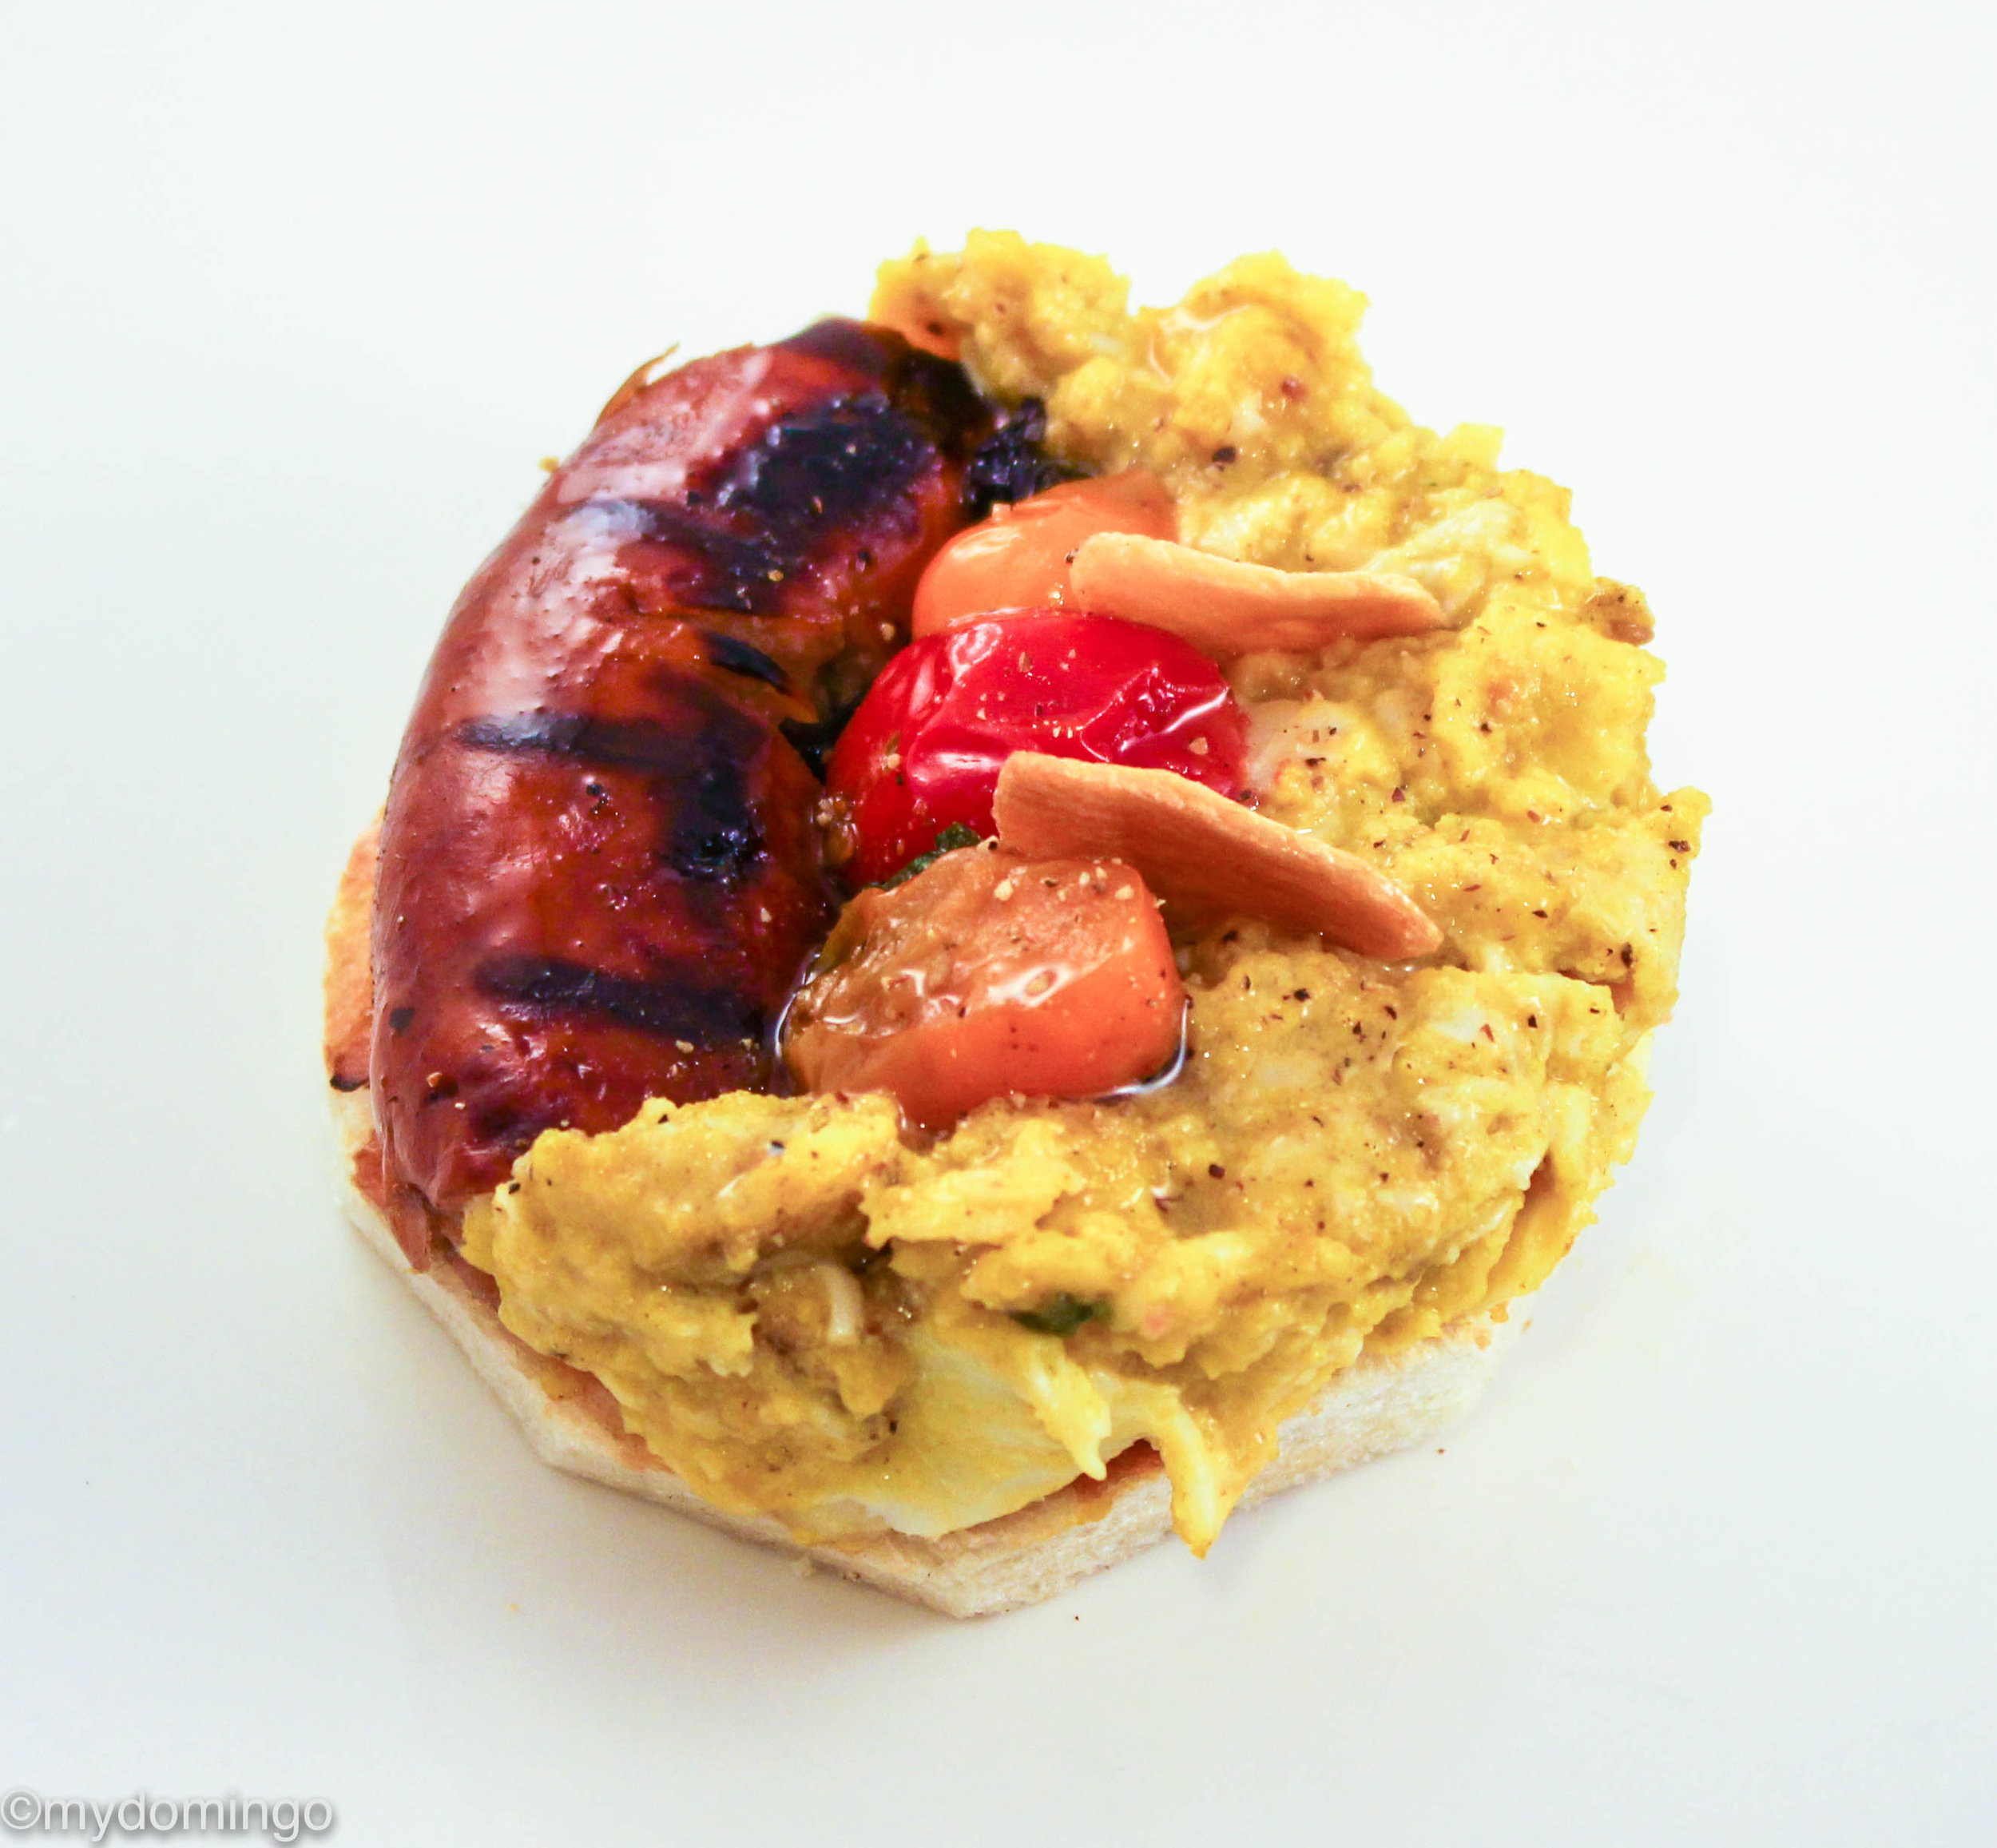 Open face four bite sandwich with turkey sausage, scrambled eggs, tomatoes, spinach, garlic crisps served on a sourdough bread.